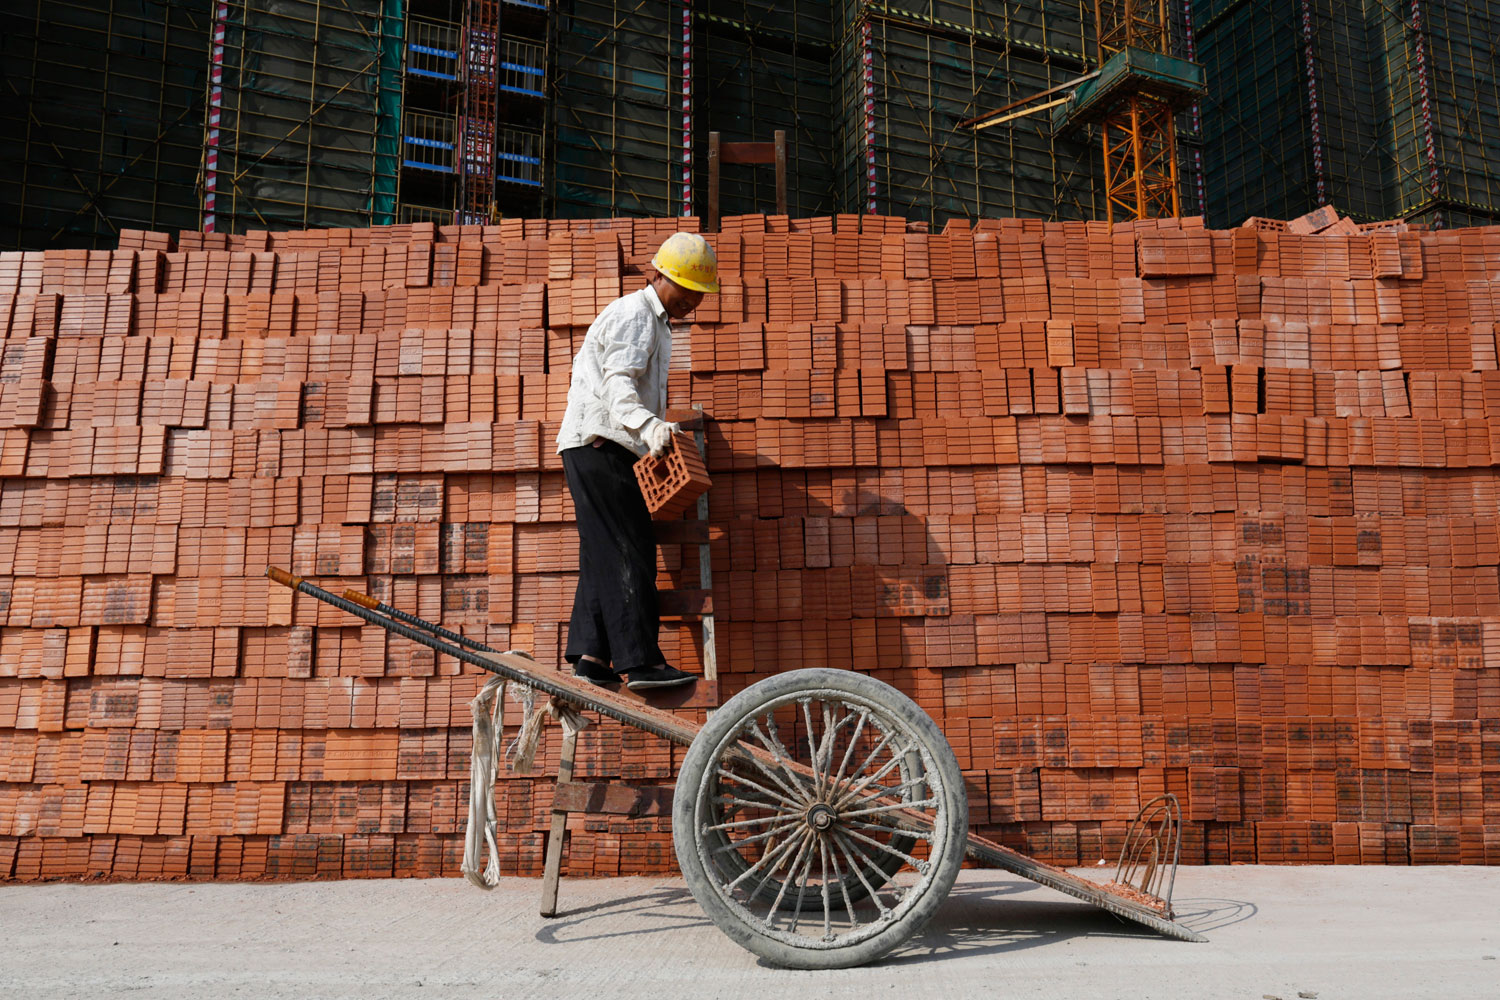 A labourer works at a construction site in Hangzhou, Zhejiang province, April 14, 2014. China's economy grew at its slowest pace in 18 months in the first quarter of 2014, official data showed on Wednesday.